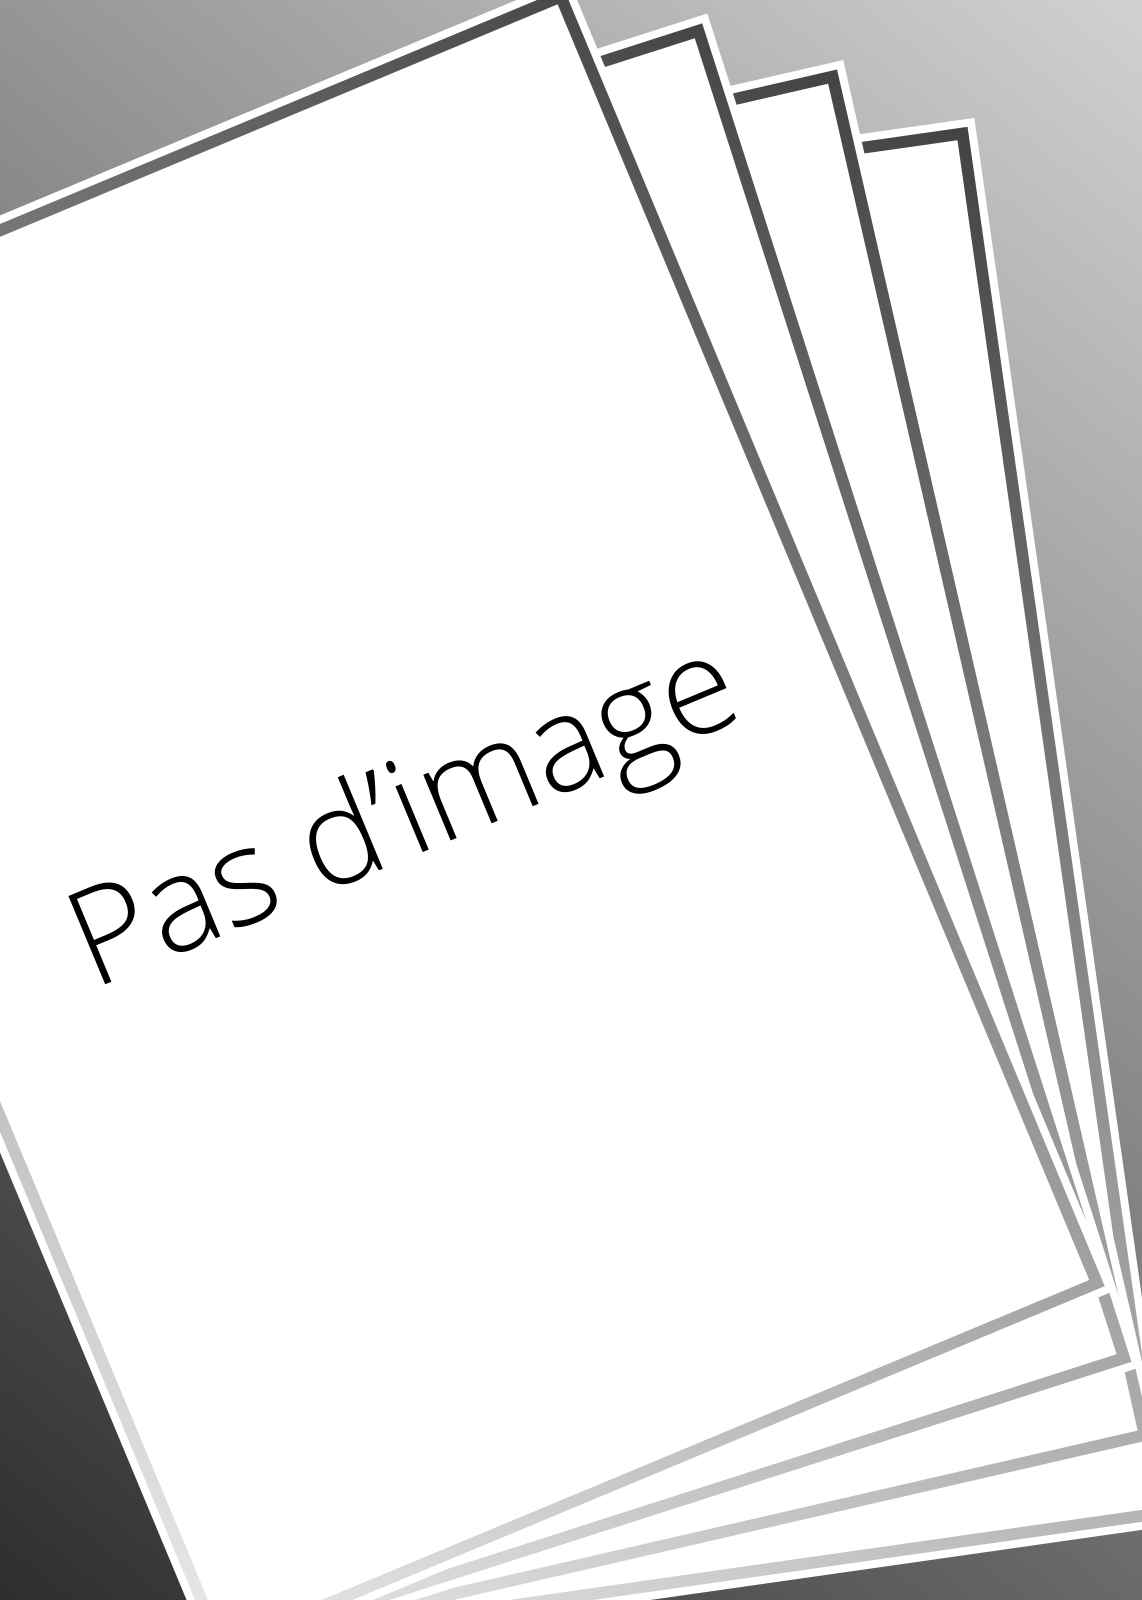 FORMATION DES EXPATRIES DE LA SOLIDARITE